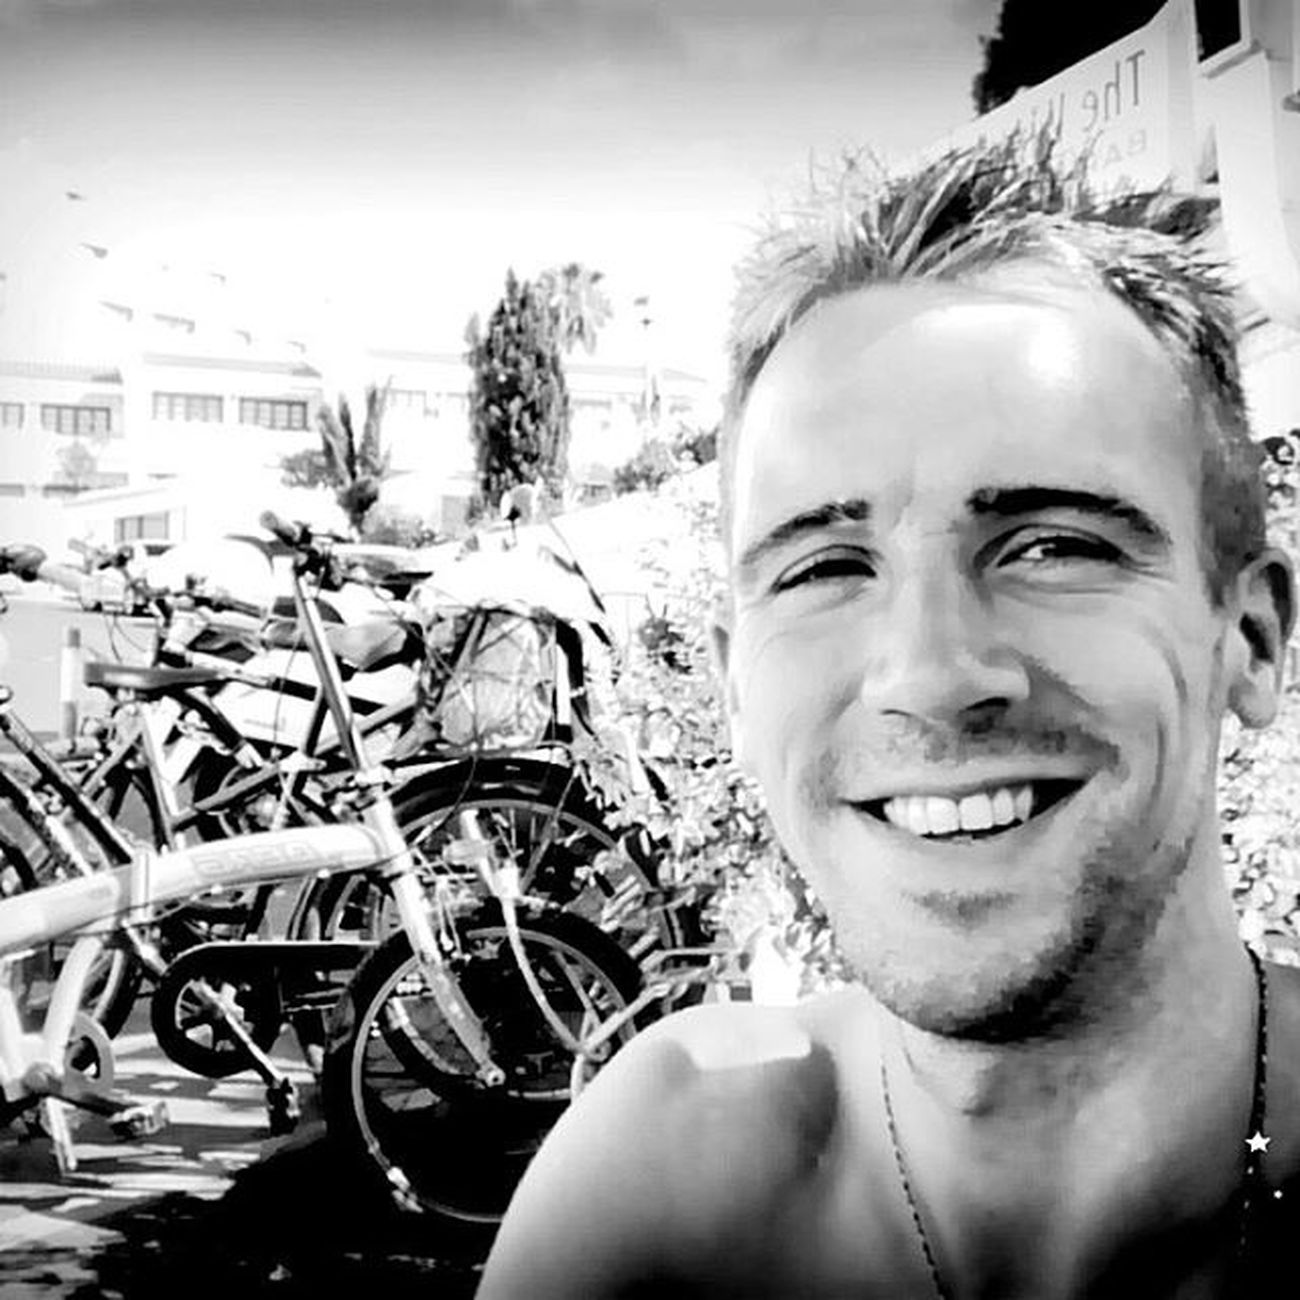 Bicycles Happy Tenerife Adeje Canaryisland Me Enjoylife Adventures Exploring 2015  July Happiness Thinkingofmybeautifulgirlfriend Inlove Sooohappy Smile Positivementalattitude